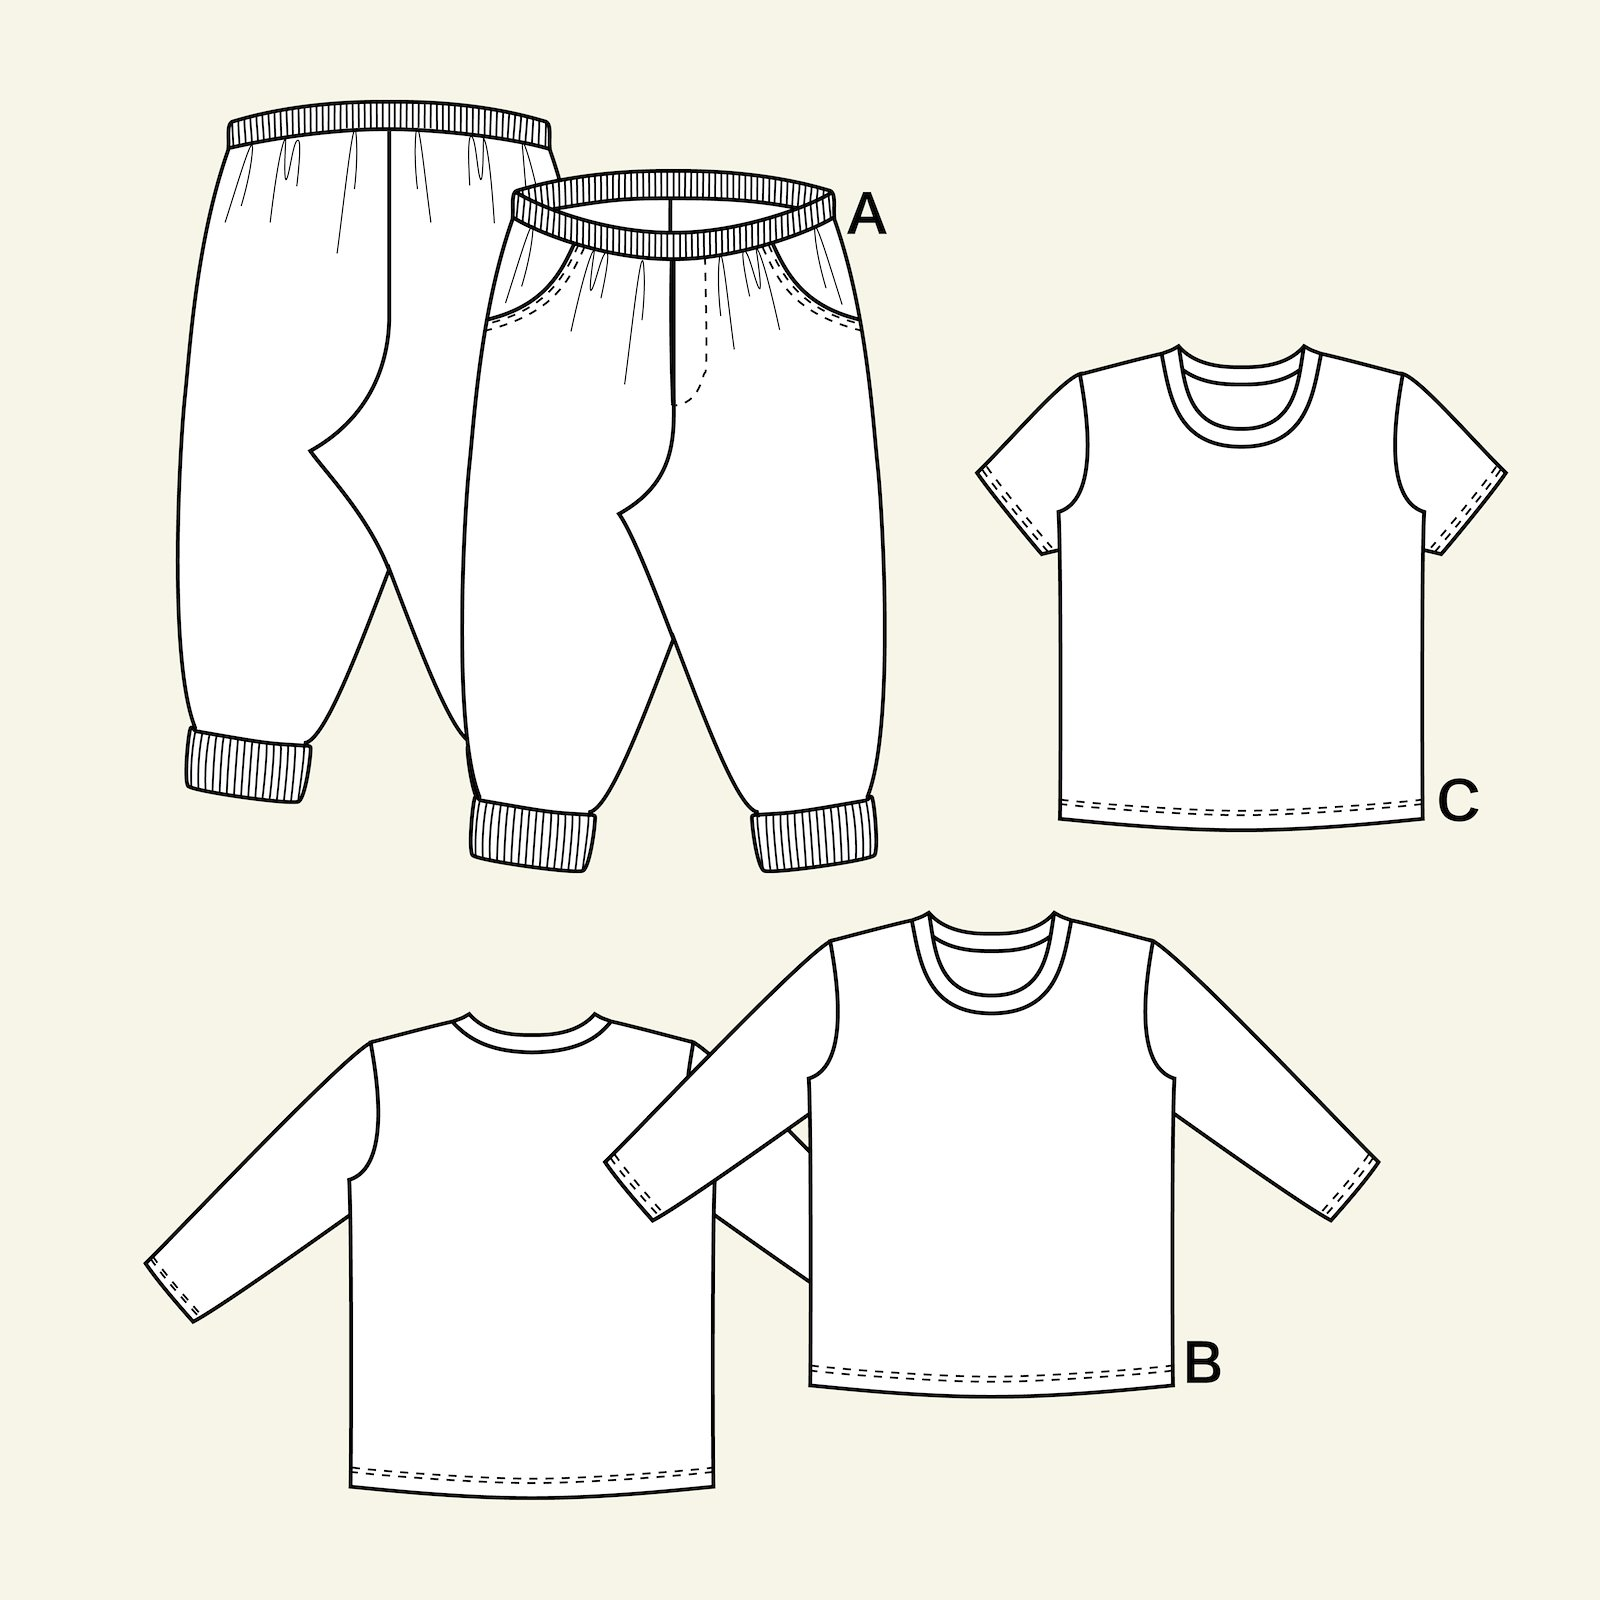 Trousers and T-shirt, 68/3m p81022_pack